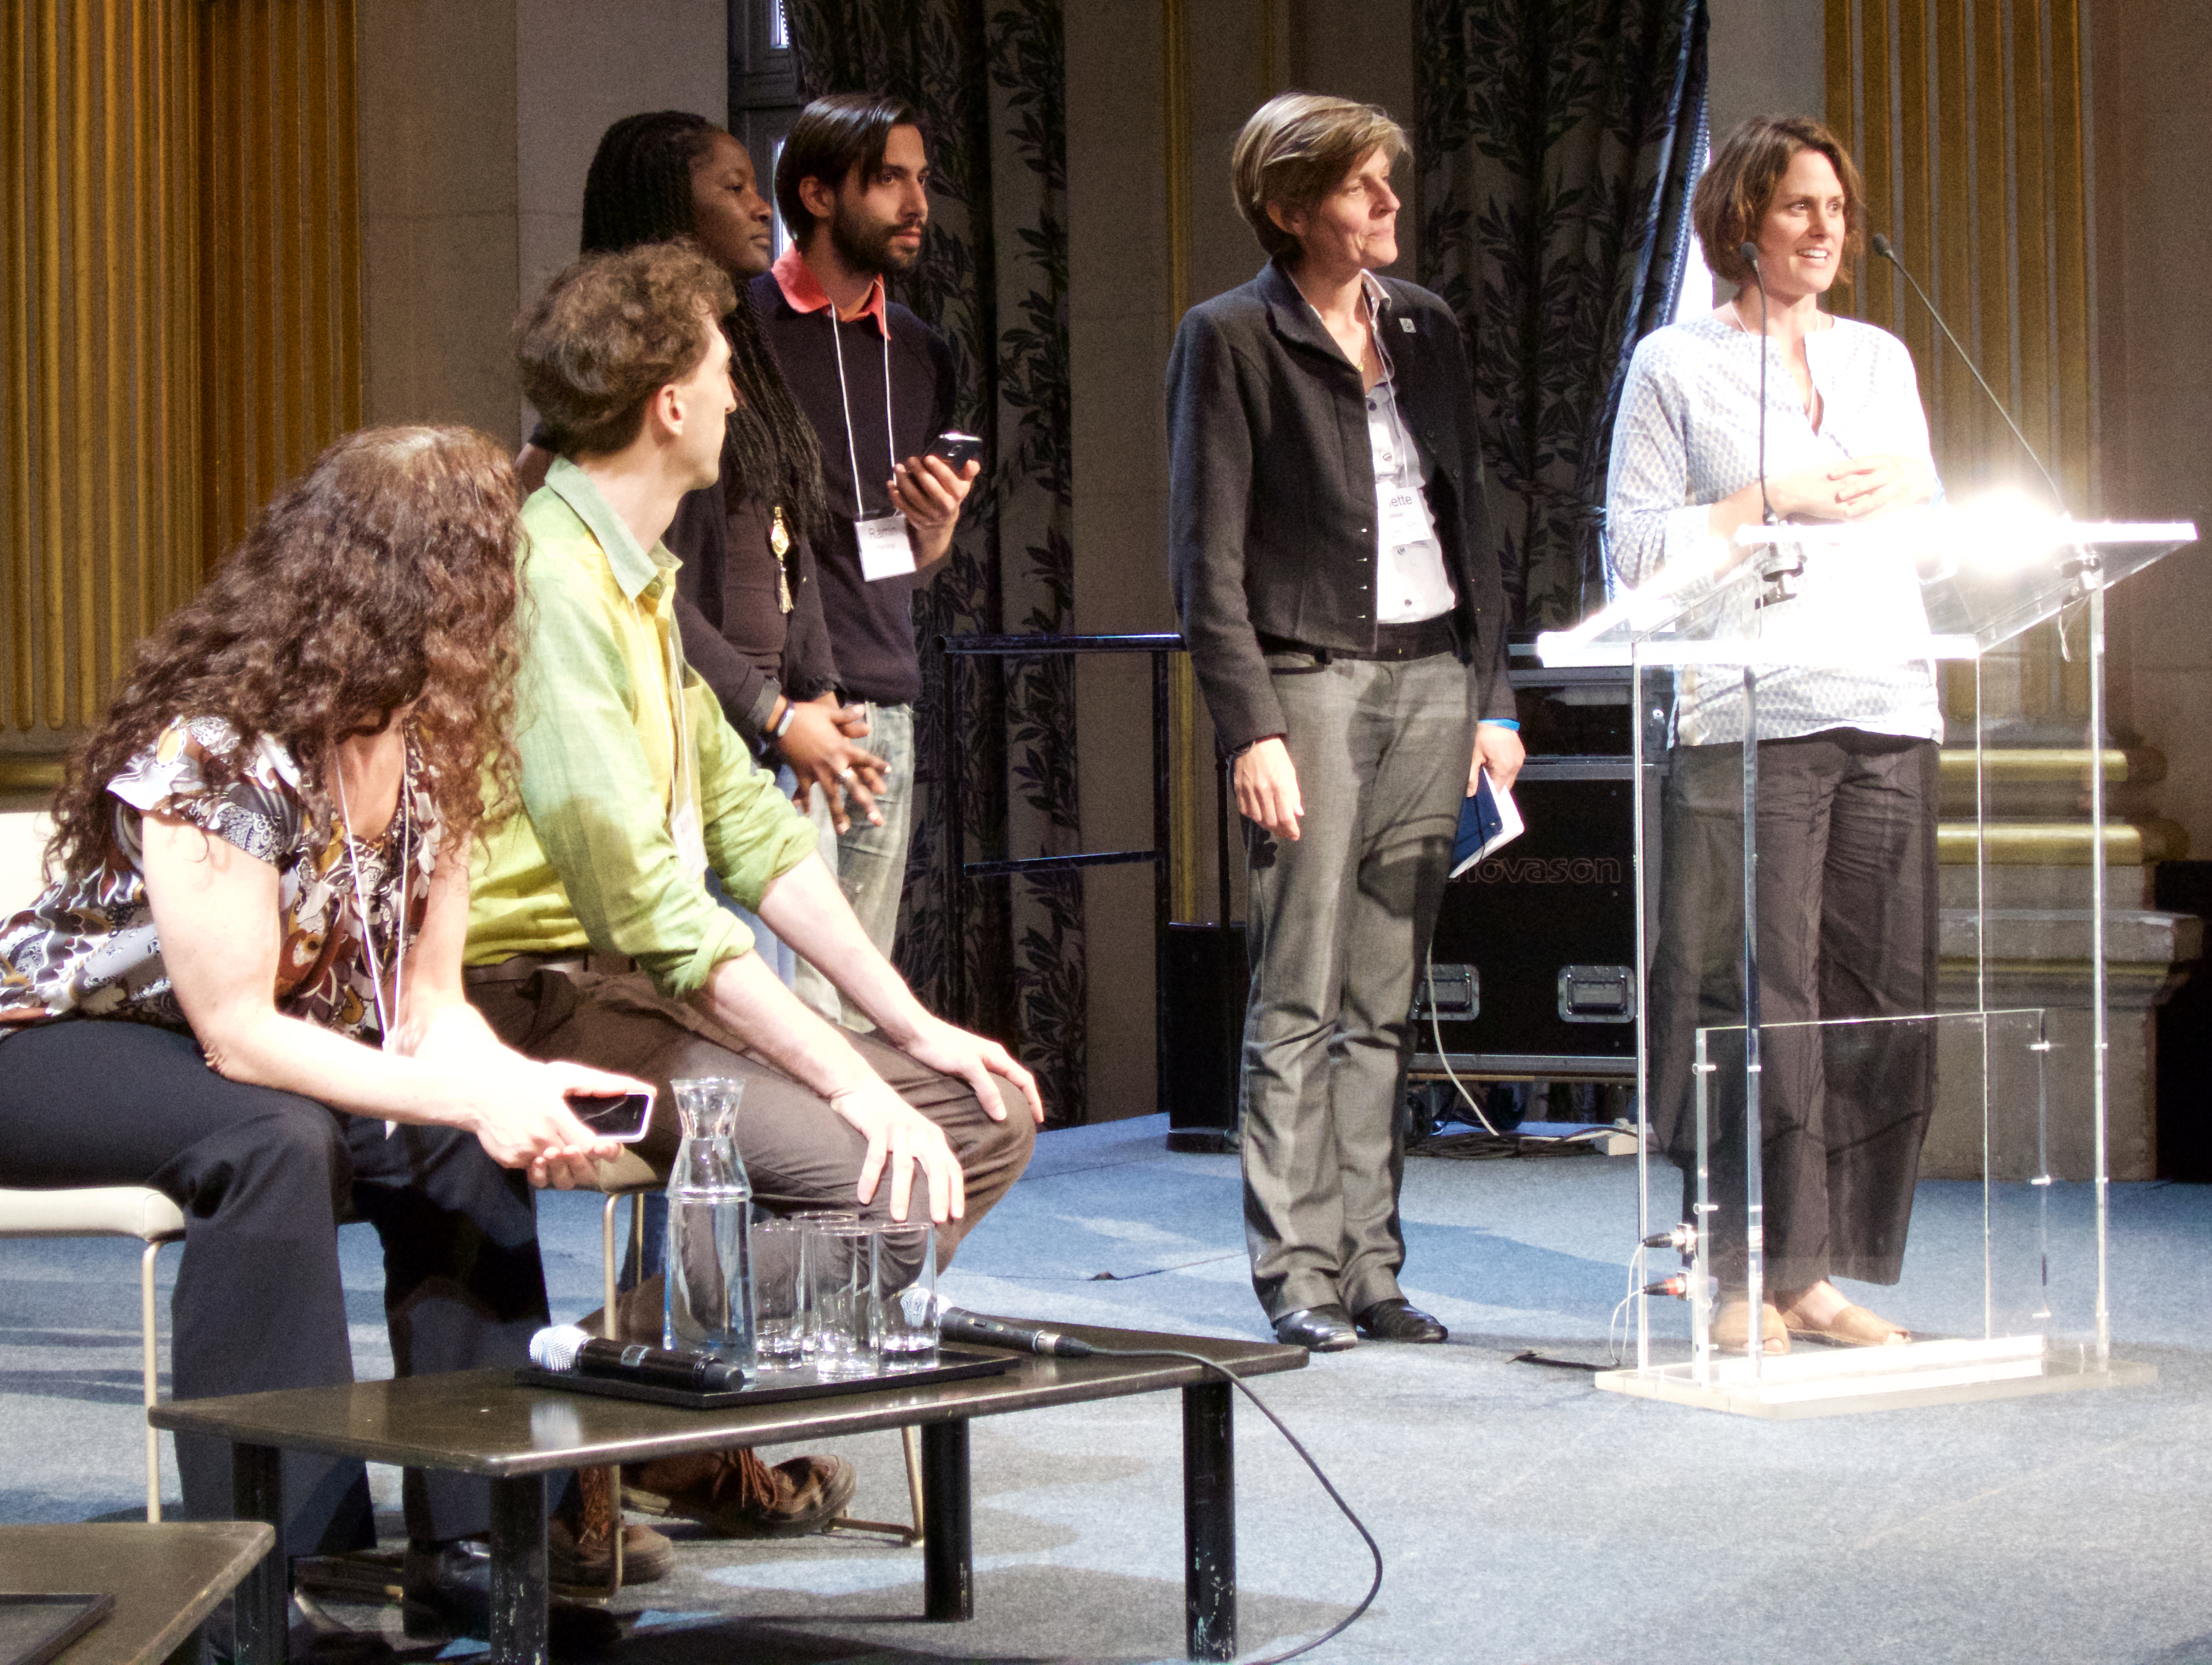 At the Hôtel de Ville, presenting ideas for healing the city of Paris at the Paris Sage Assembly, April 17, 2015.  From left: Jessie Tenenbaum, Arno Klein, A representative from the city, Ramin Farhangi, Annette Bakker, and Amy Clark.